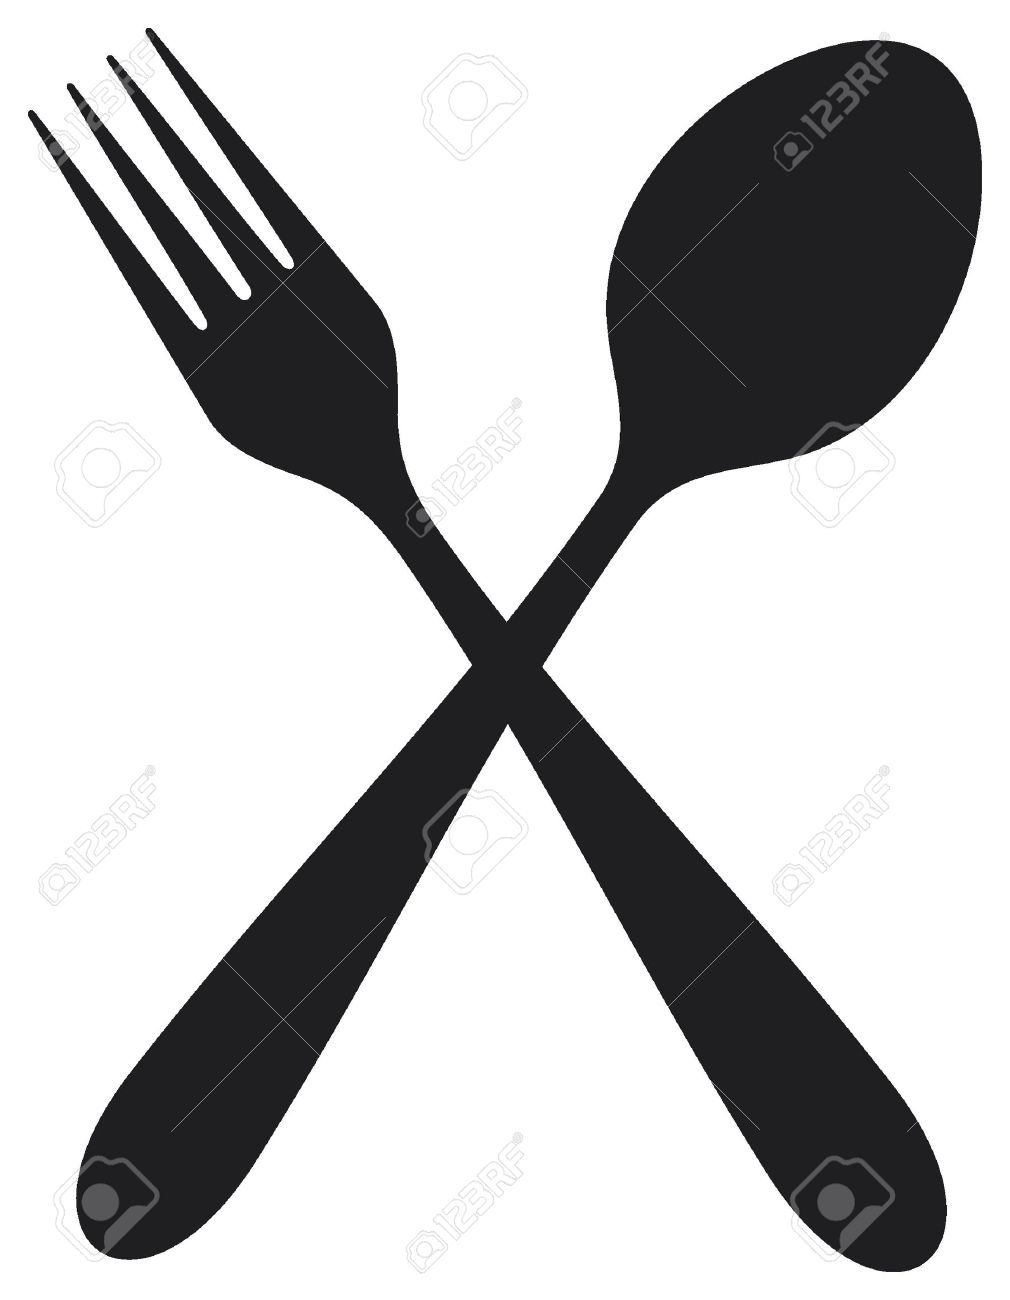 Free clipart of fork spoon and knife border jpg library download Spoon Fork Cliparts | Free download best Spoon Fork Cliparts on ... jpg library download